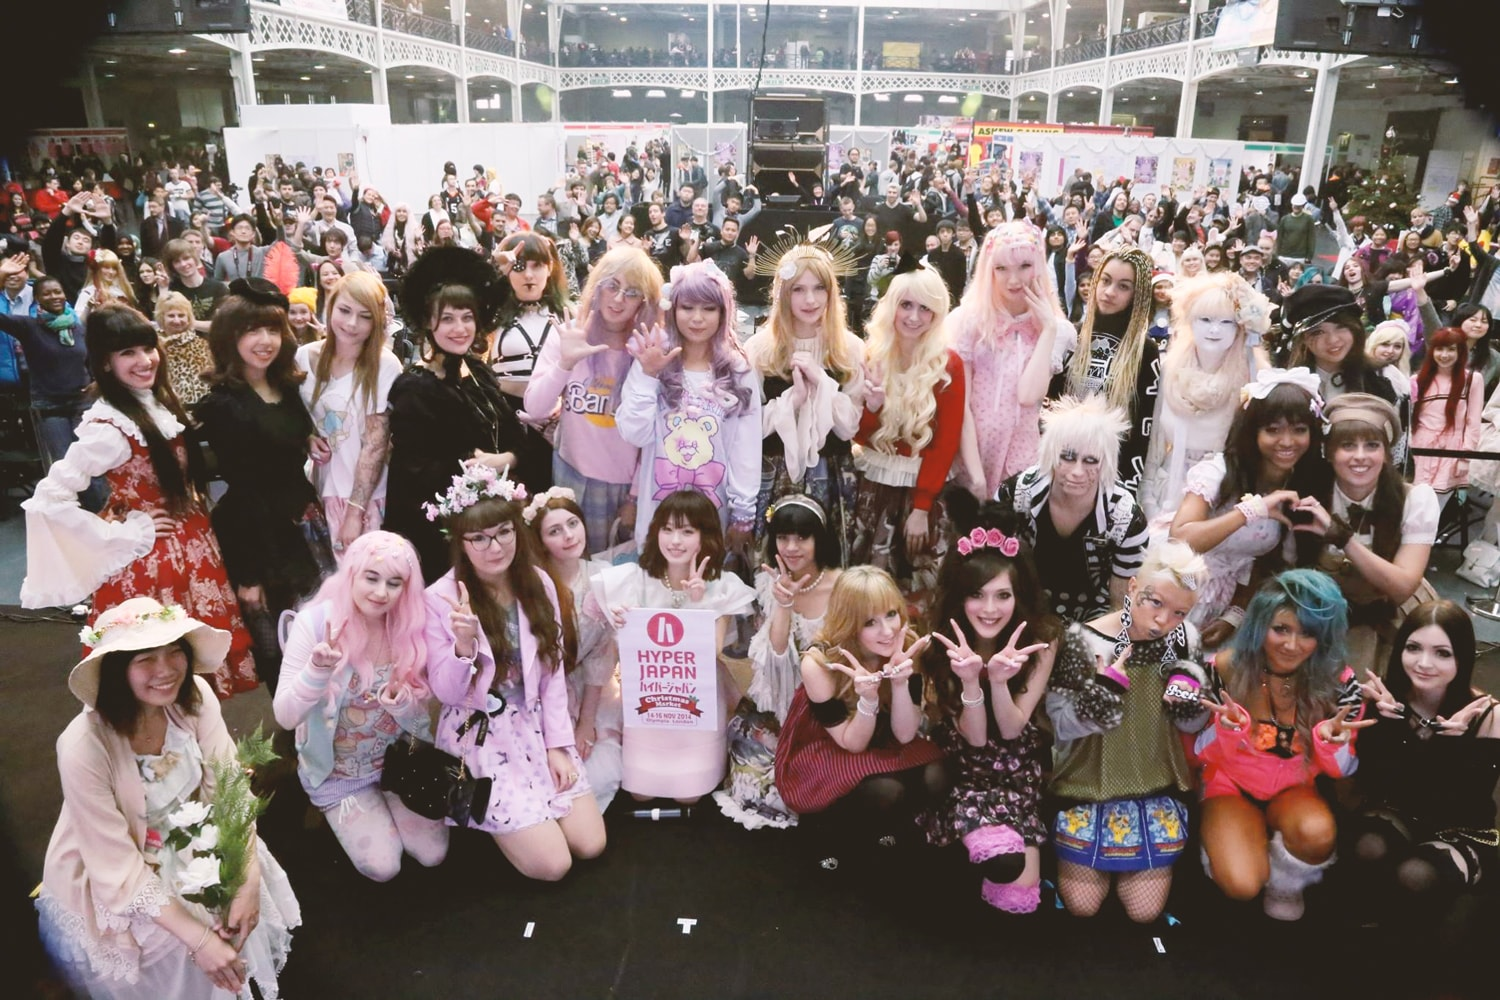 jfashion community in the uk, hyper japan fashion show